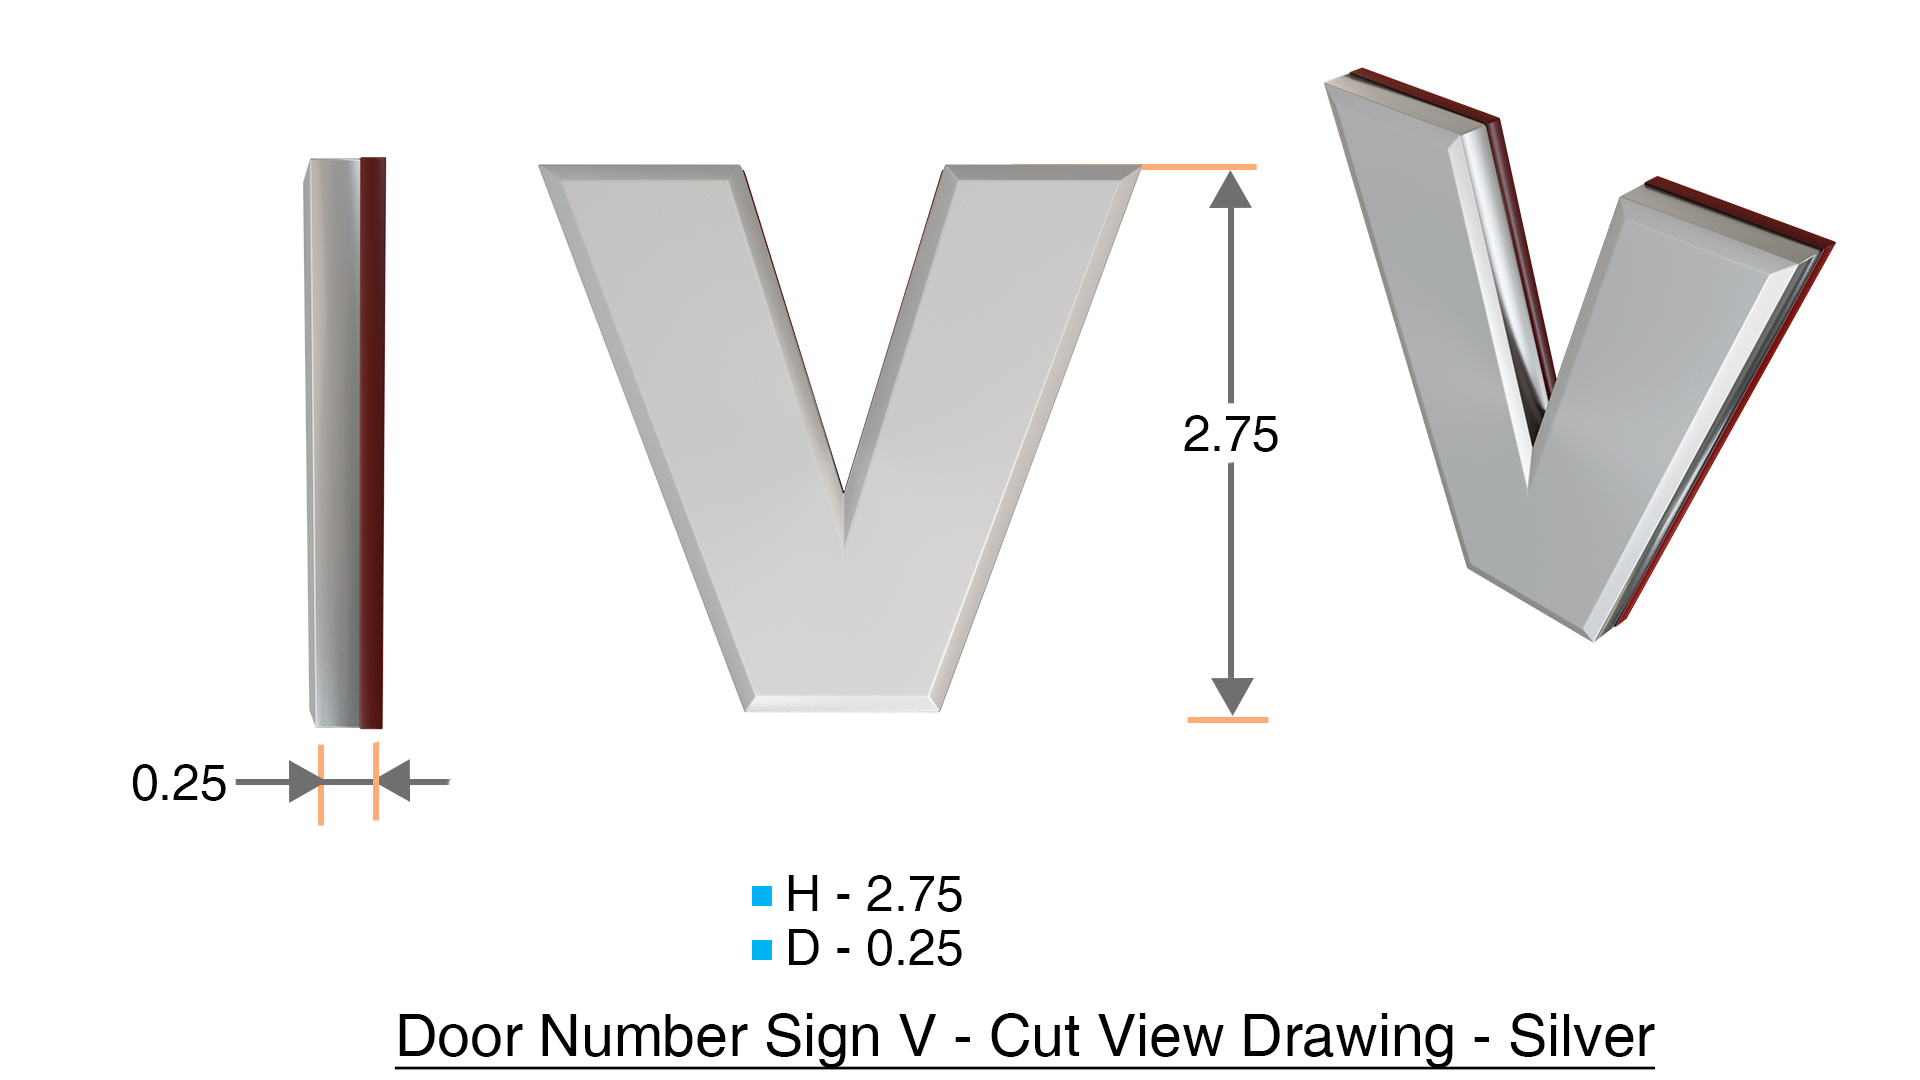 z- APARTMENT, DOOR AND MAILBOX LETTER V SIGN - LETTER SIGN V- SILVER (HIGH  QUALITY PLASTIC DOOR SIGNS 0.25 THICK)